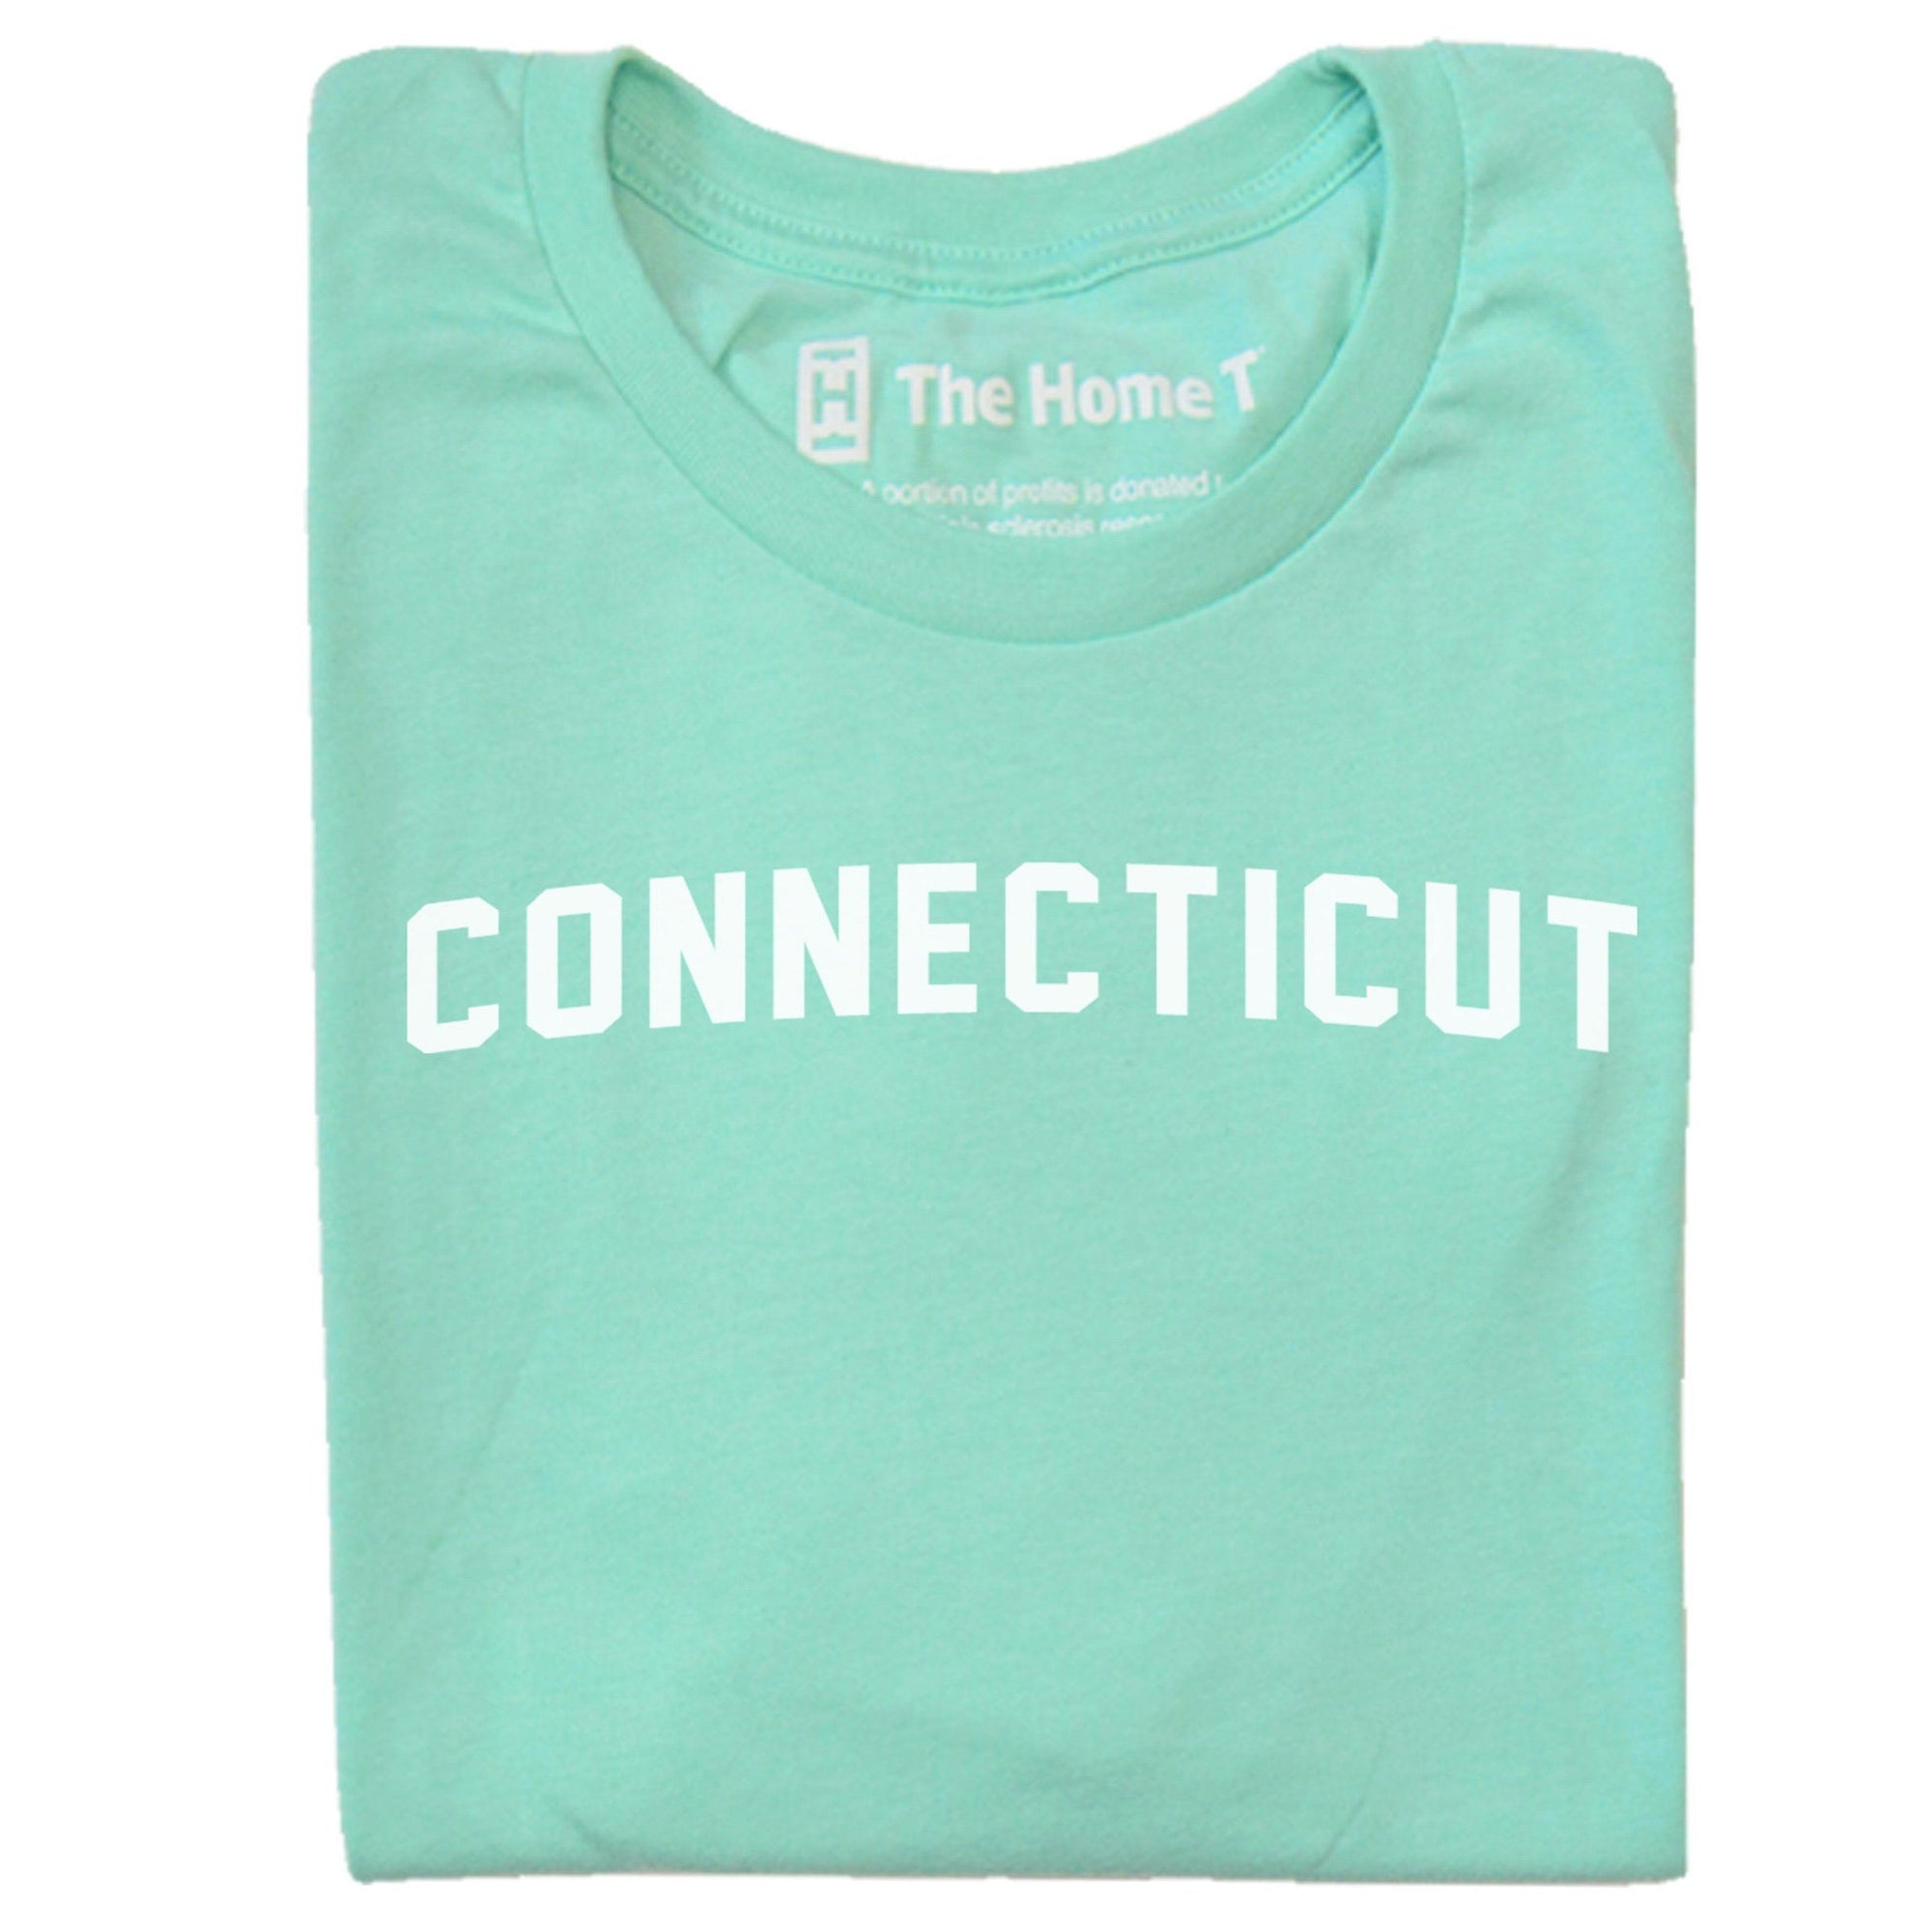 Connecticut Arched The Home T XS Mint